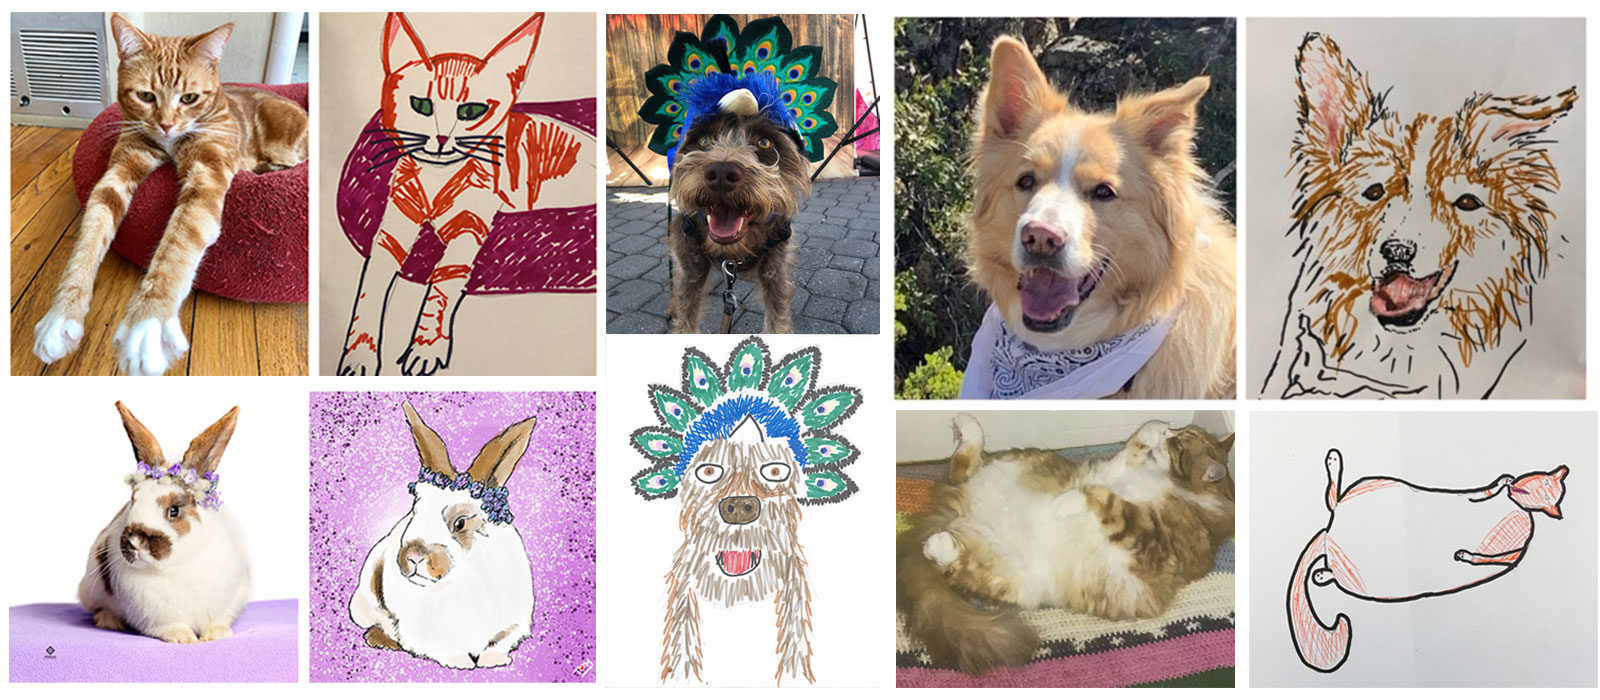 Get a unique portrait of your pet and raise funds for the shelter